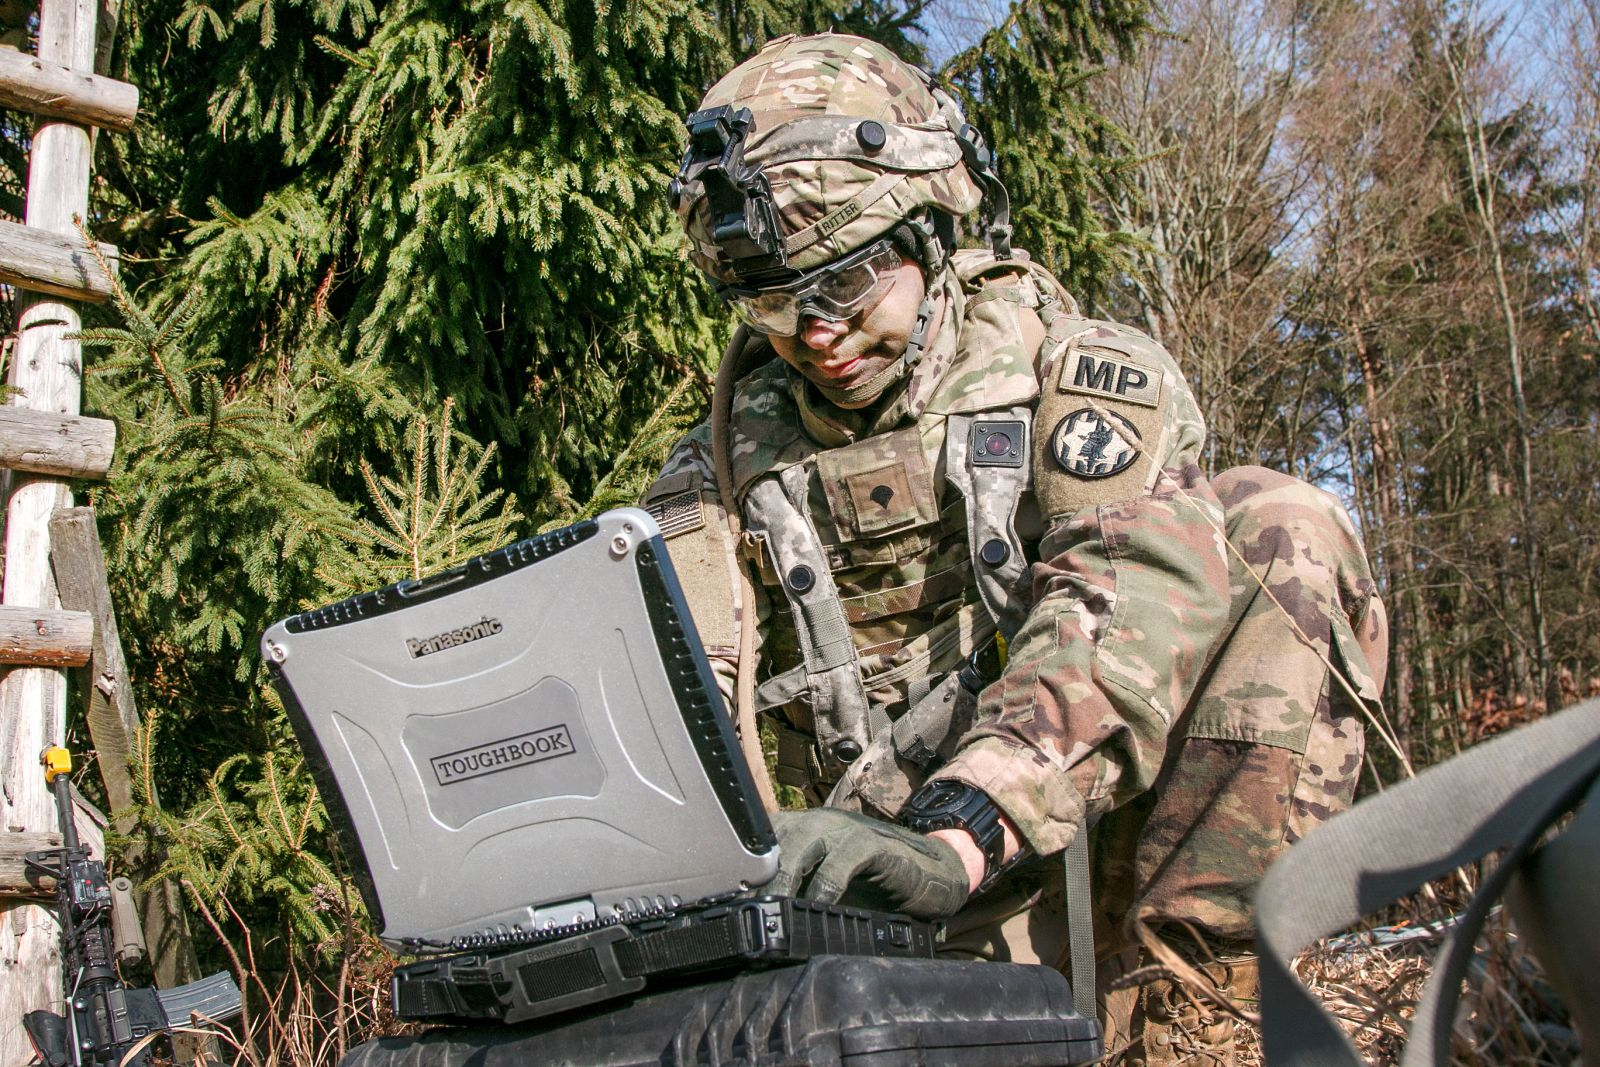 Panasonic Toughbook military laptops